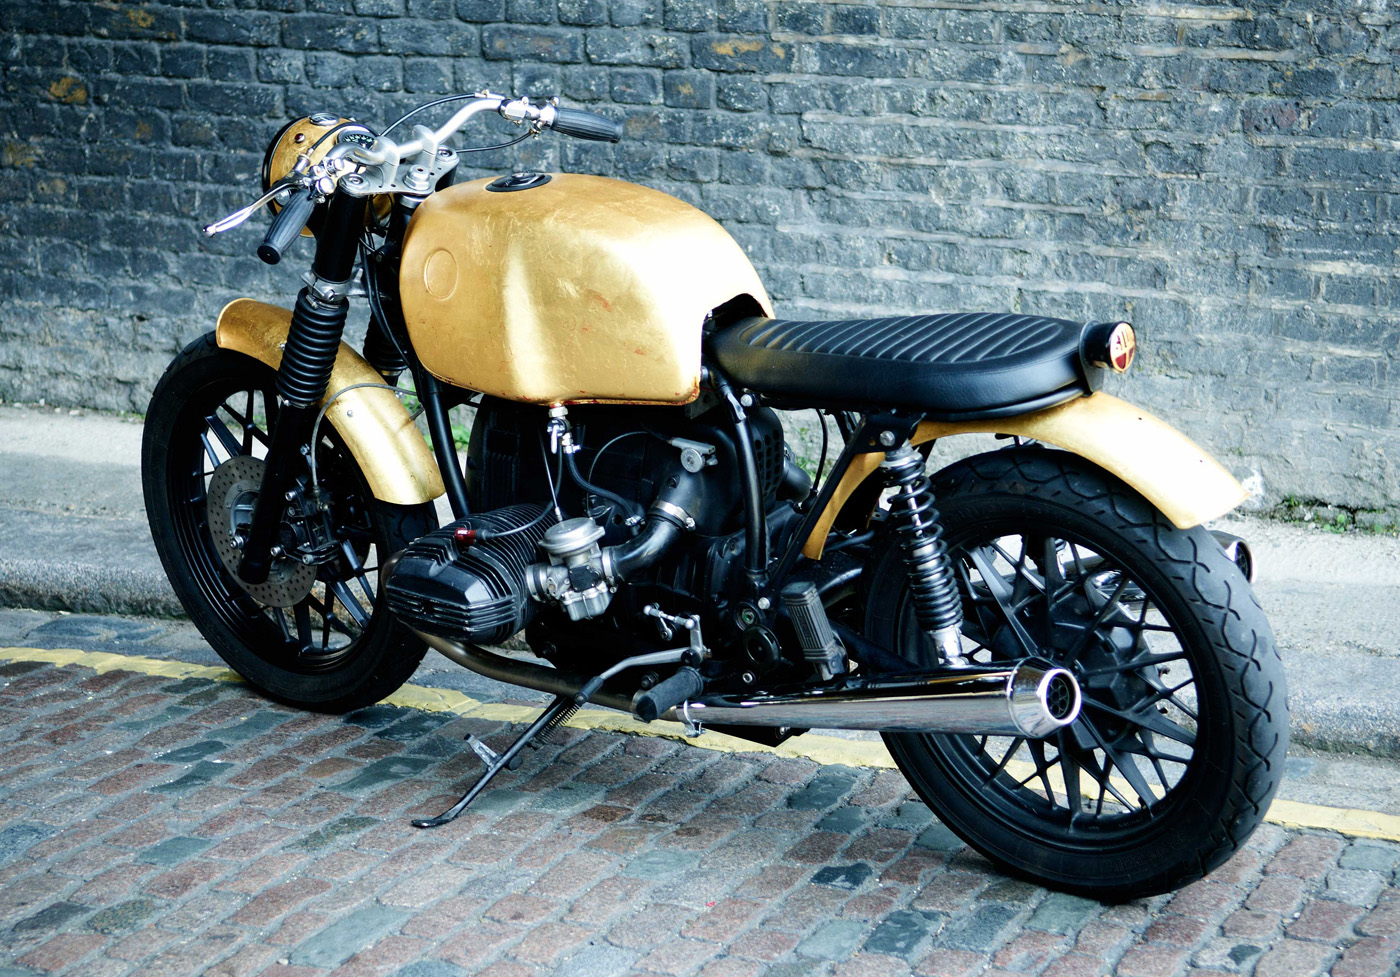 Real Gold for Untitled Motorcycles BMW R80 7 autoevolution